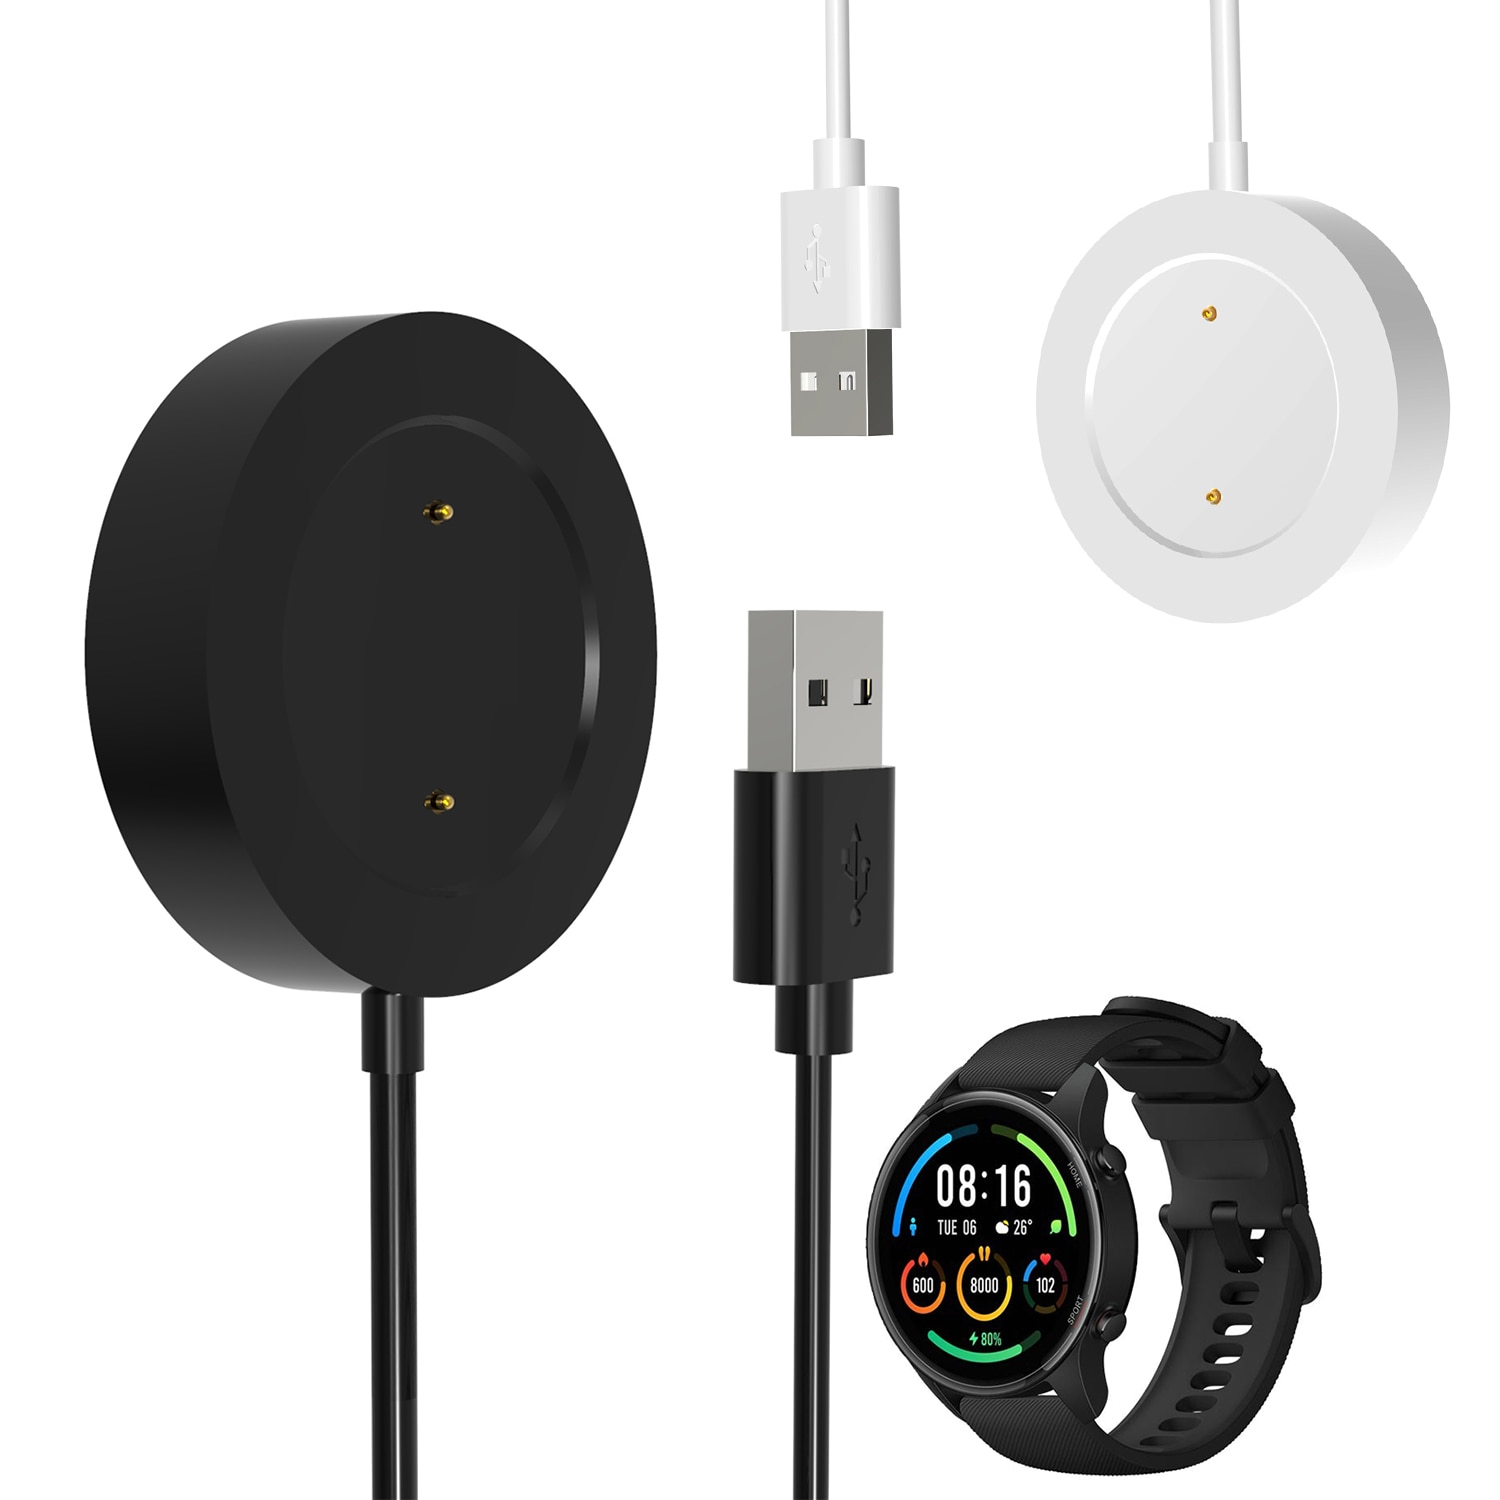 Smartwatch Dock Charger Adapter USB Charging Cable Cord Wire for Xiaomi Mi Watch Color Sports Versio